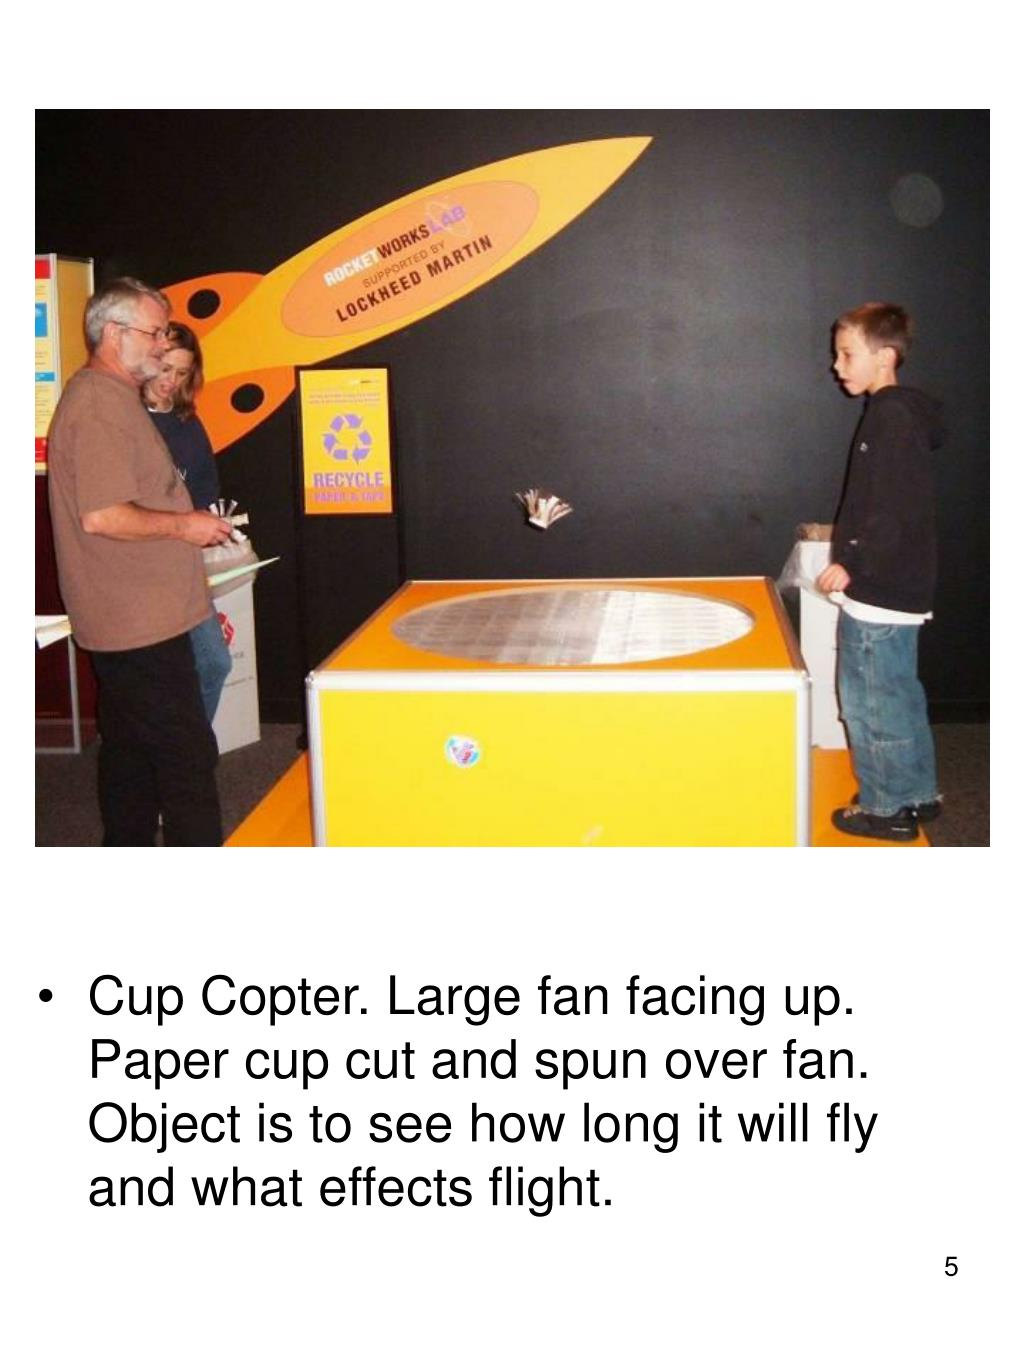 Cup Copter. Large fan facing up. Paper cup cut and spun over fan. Object is to see how long it will fly and what effects flight.